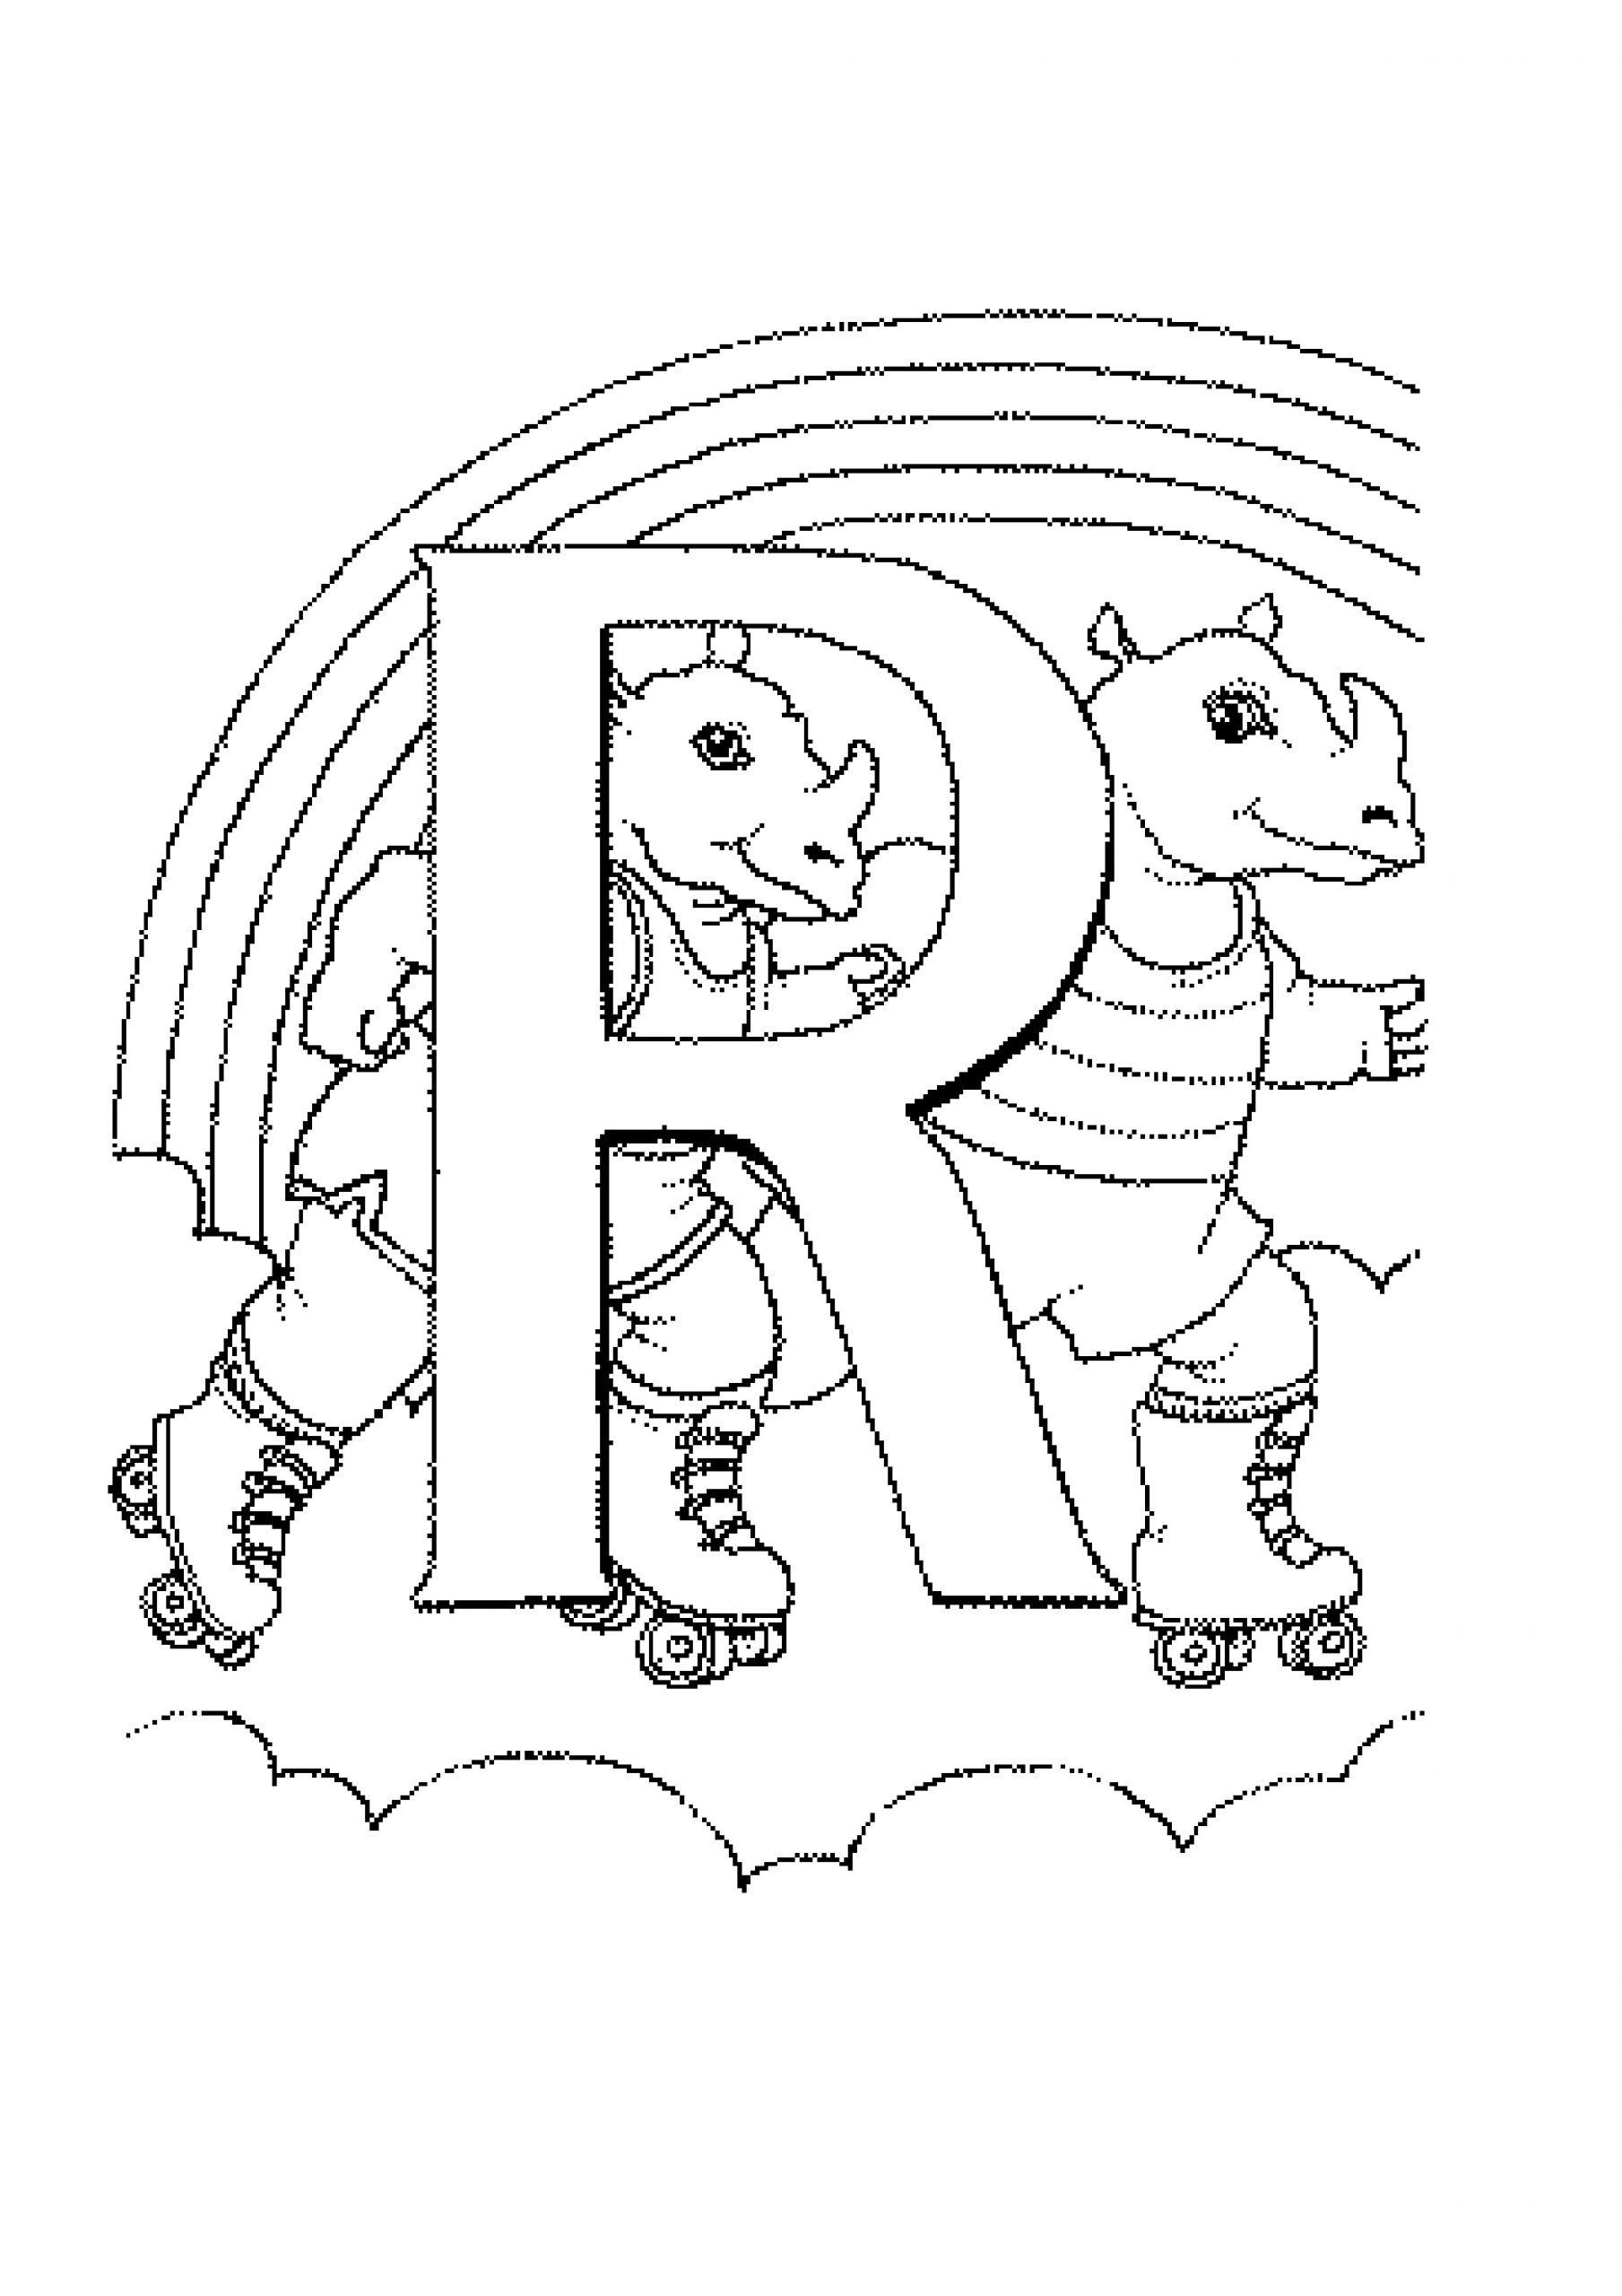 Kindergarten Dinosaur Worksheets Alphabet Worksheet